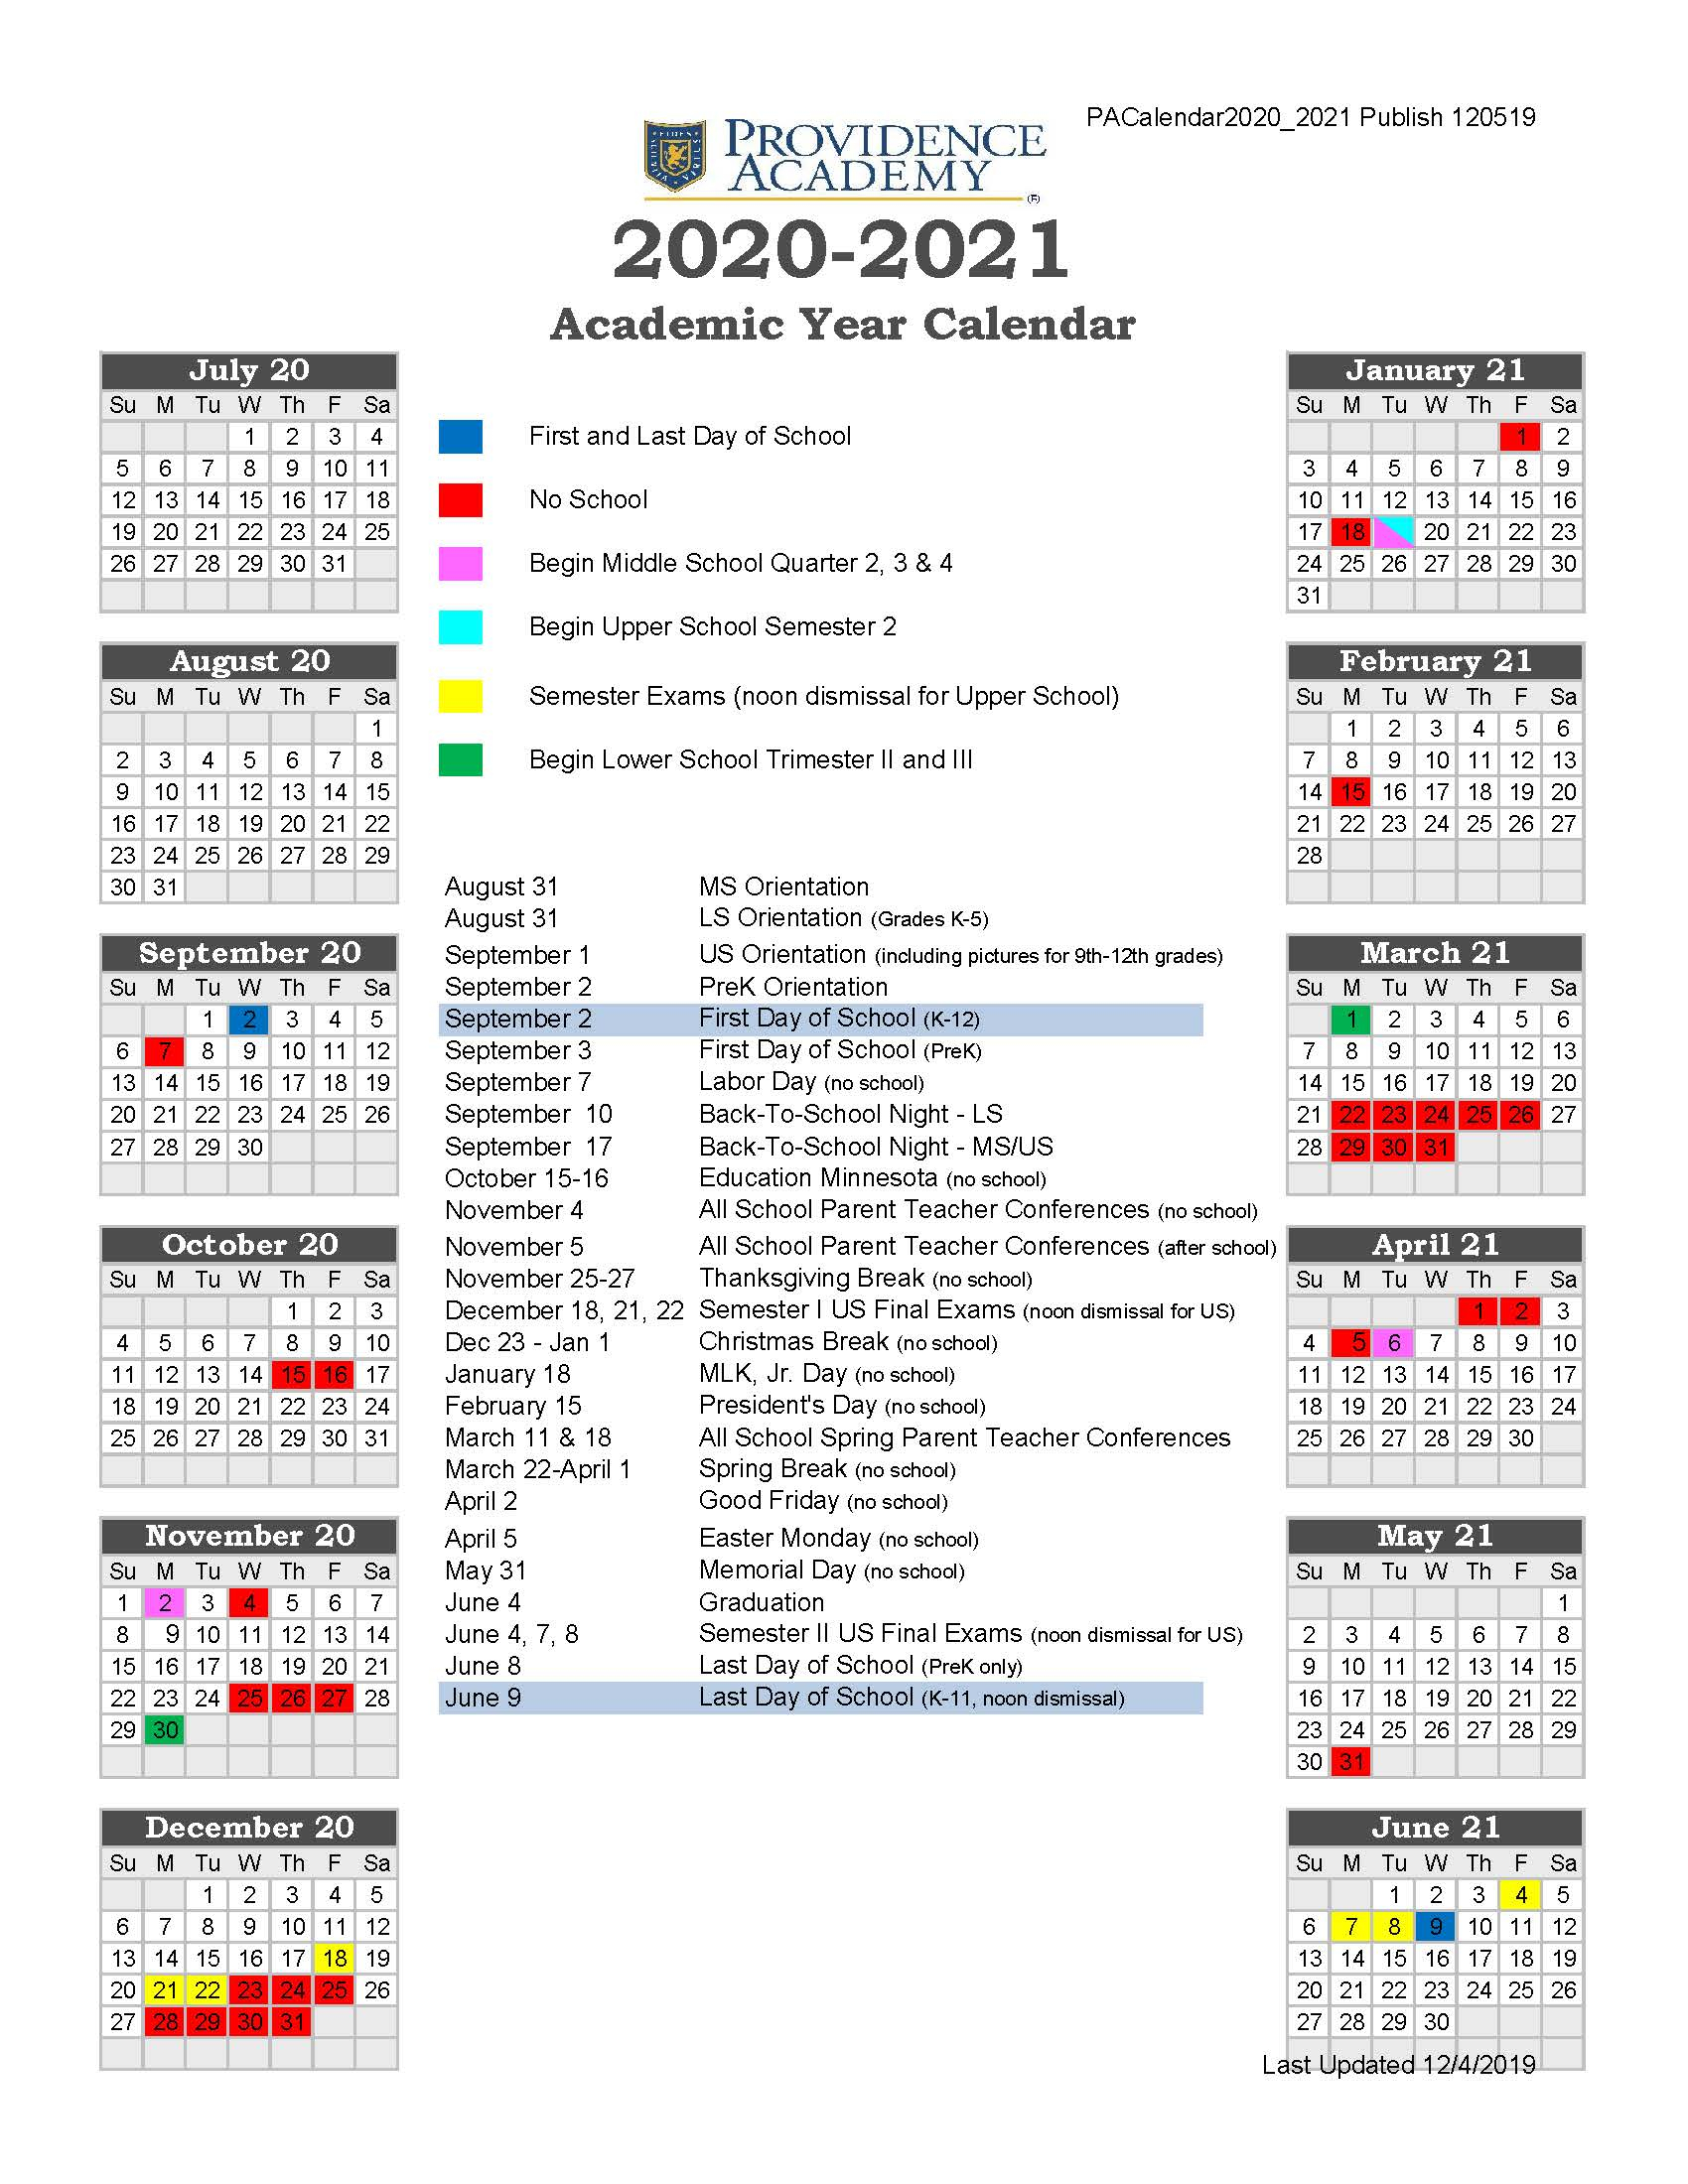 Academic Calendar - Providence Academy in Univ Of Mn Academic Calendar Twin City Campus